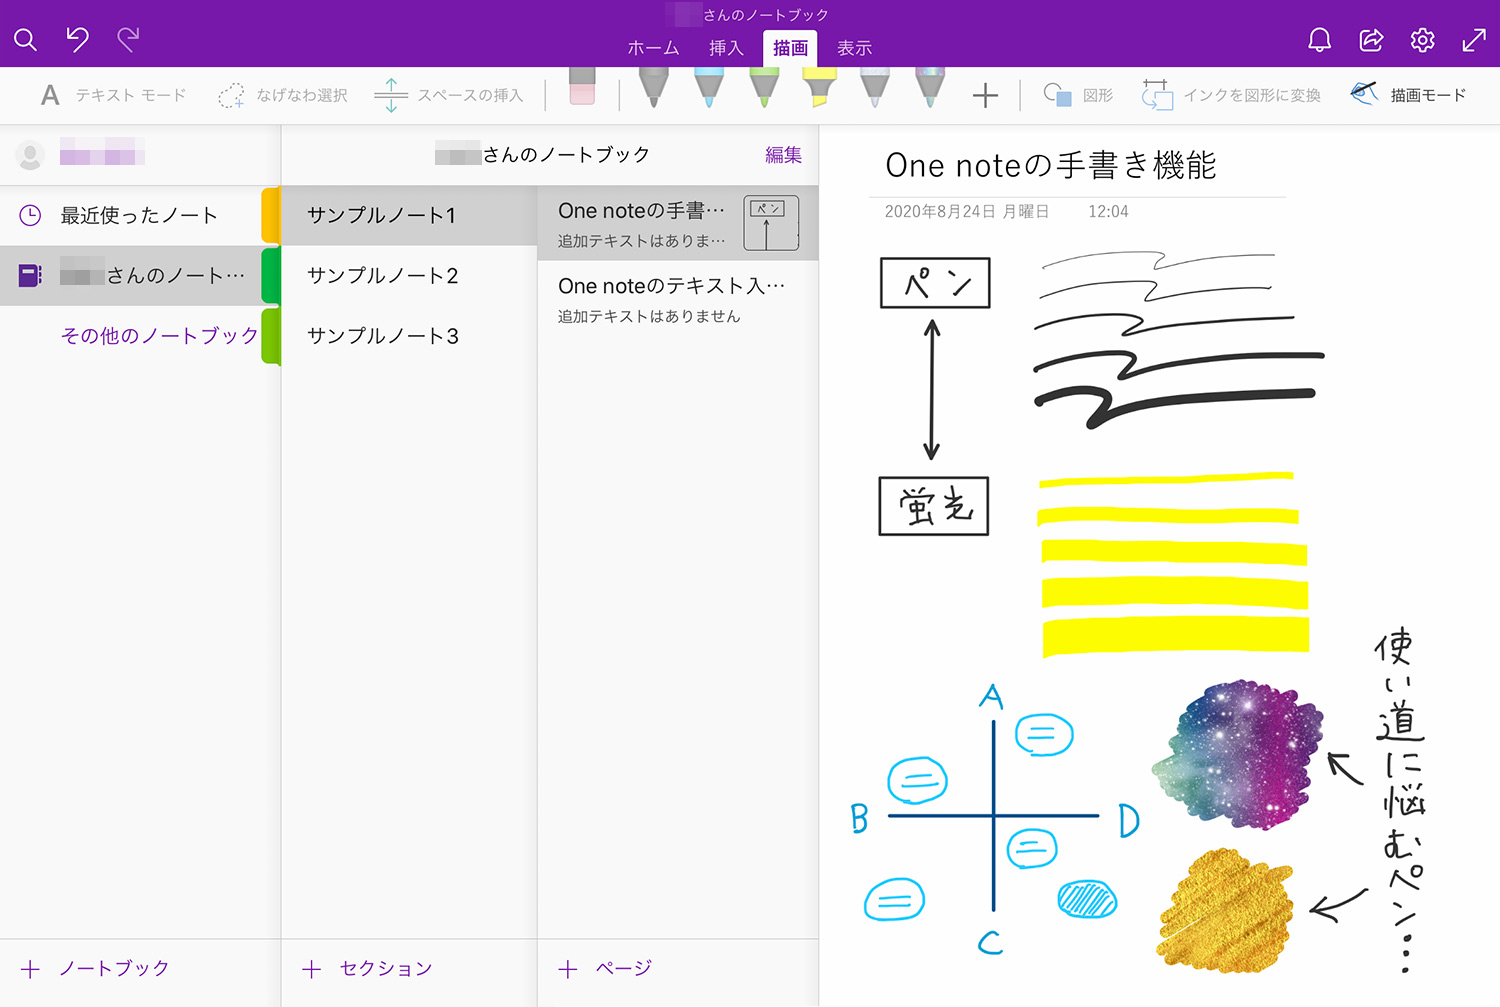 One note 手書きノートサンプル画像